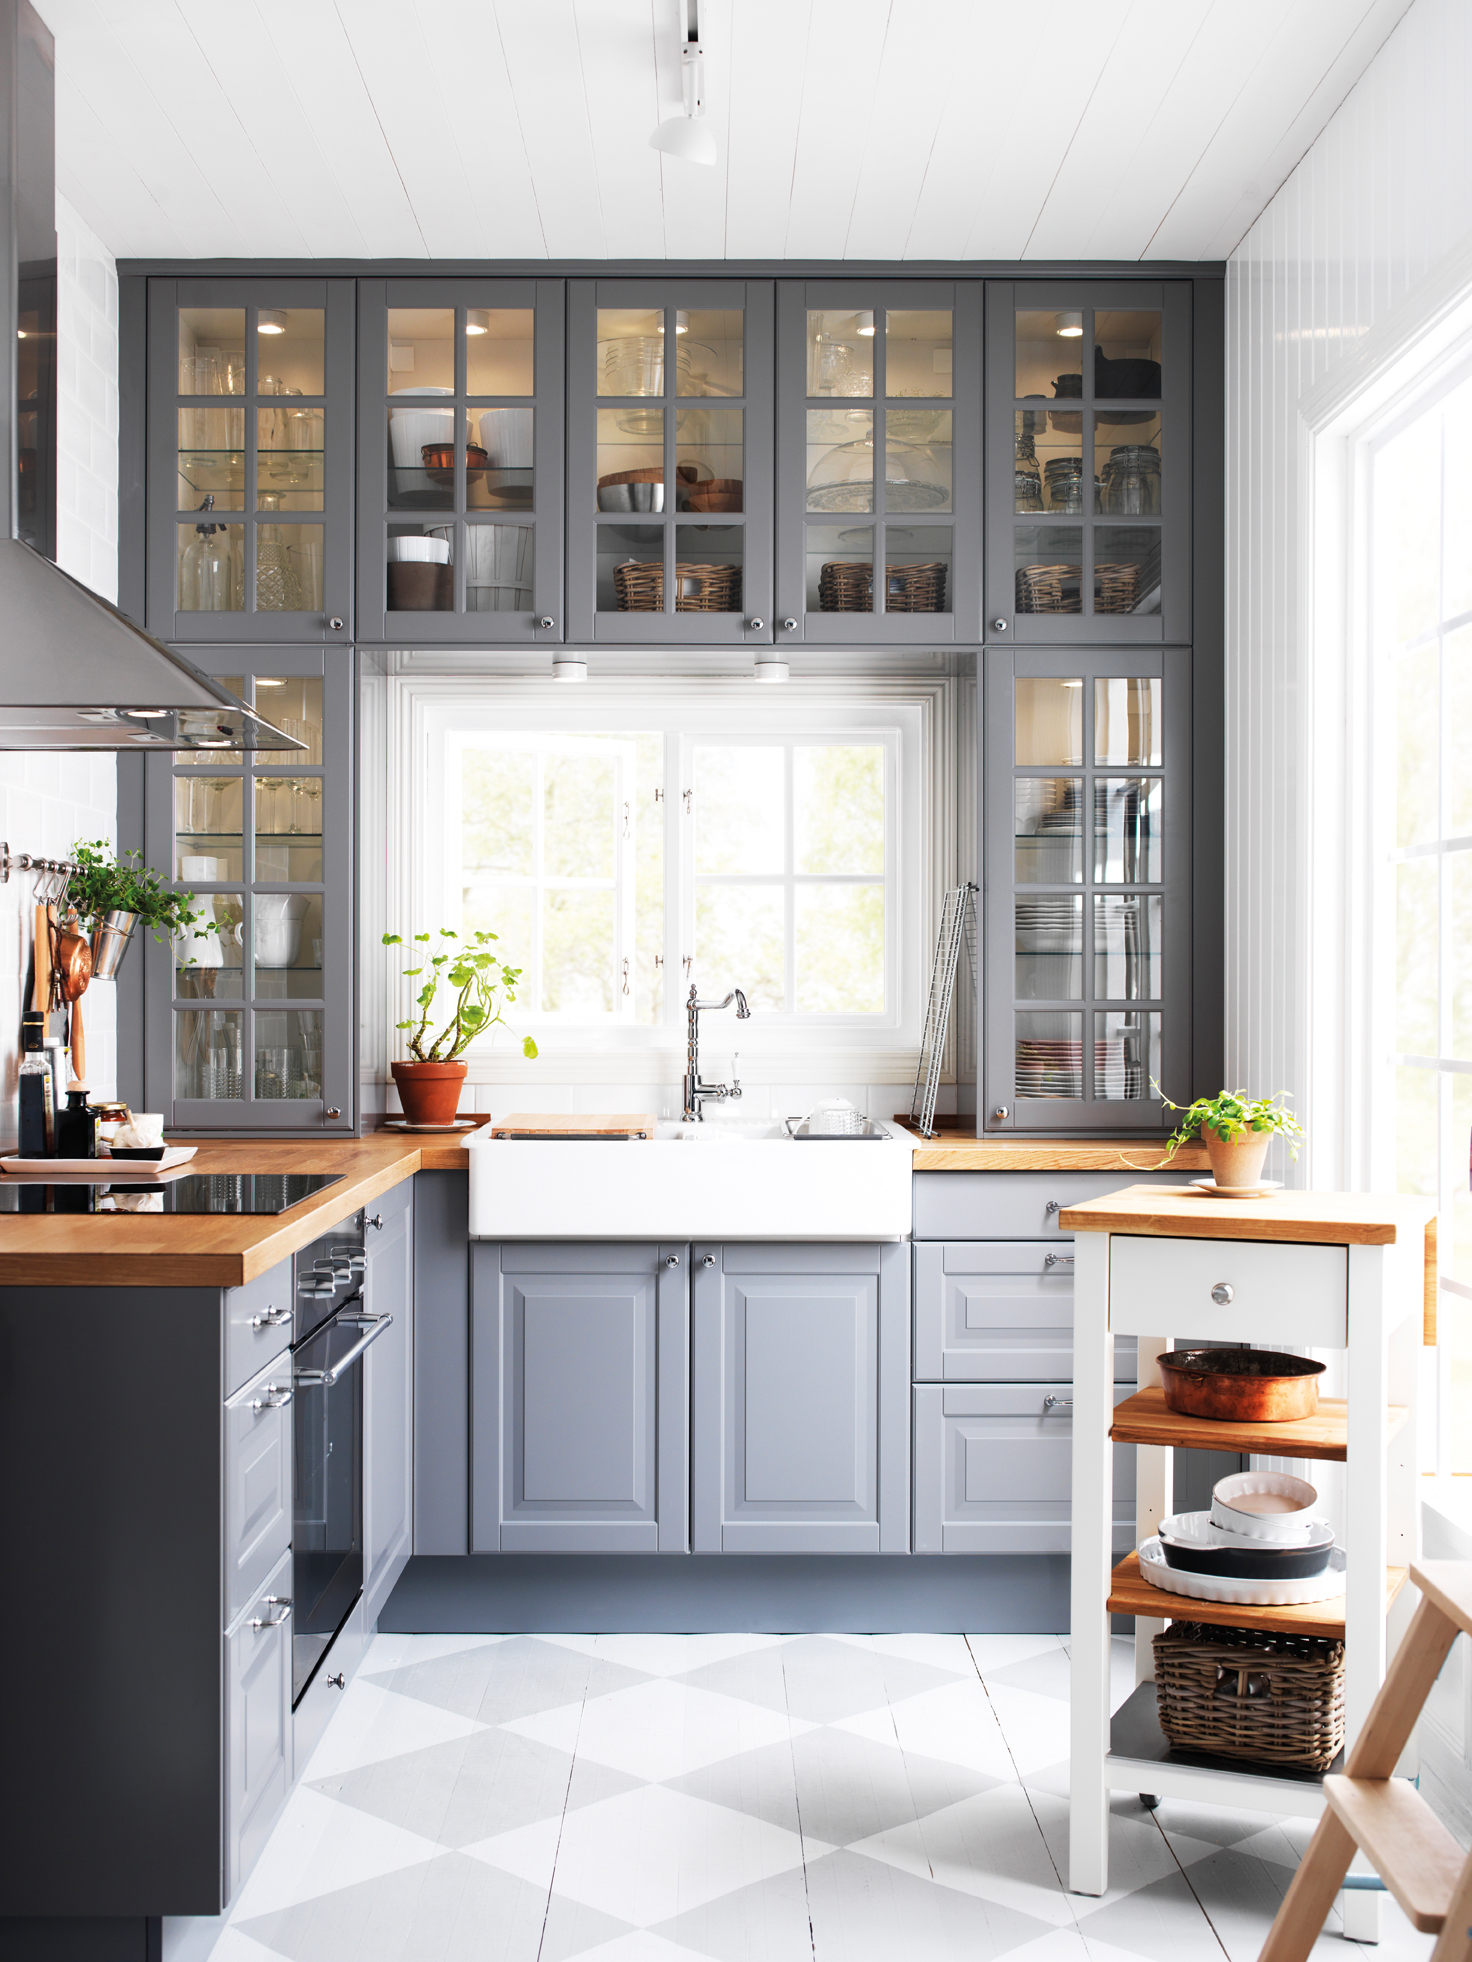 50 Best Small Kitchen Ideas and Designs for 2017 on Small:xmqi70Klvwi= Kitchen Remodel Ideas  id=73468